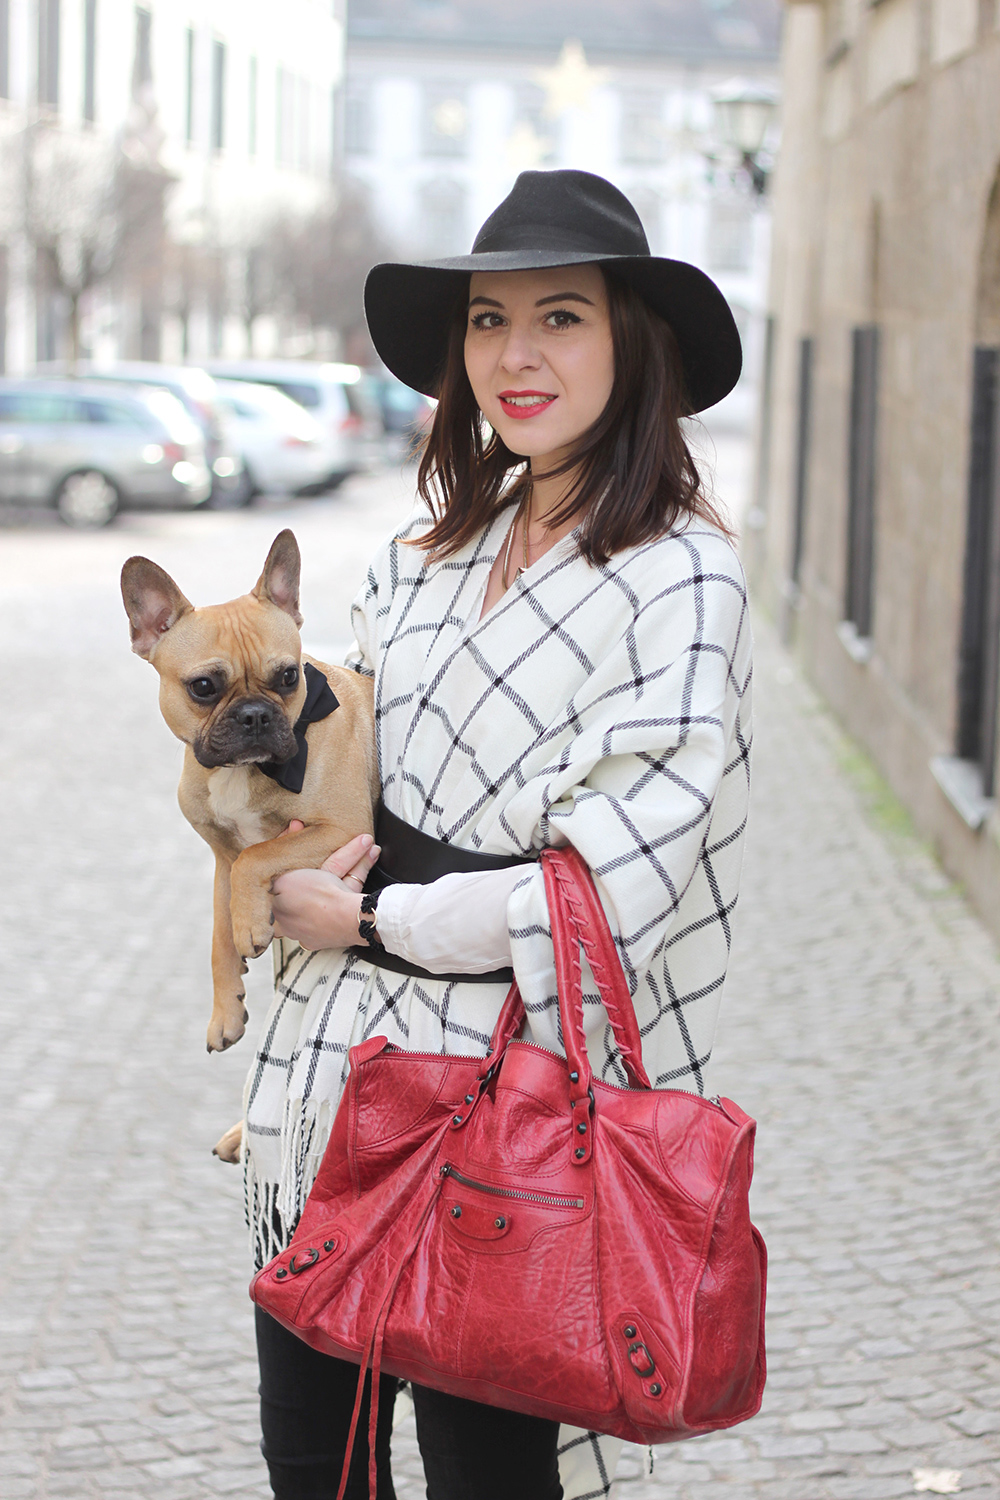 who is mocca, fashionblog tirol, blogger, beautyblog, interiorblog, balenciaga work, zara boots fell stiefeletten, fedora schlapphut, cape only zalando, französische bulldogge, skinny jeans shaping pants